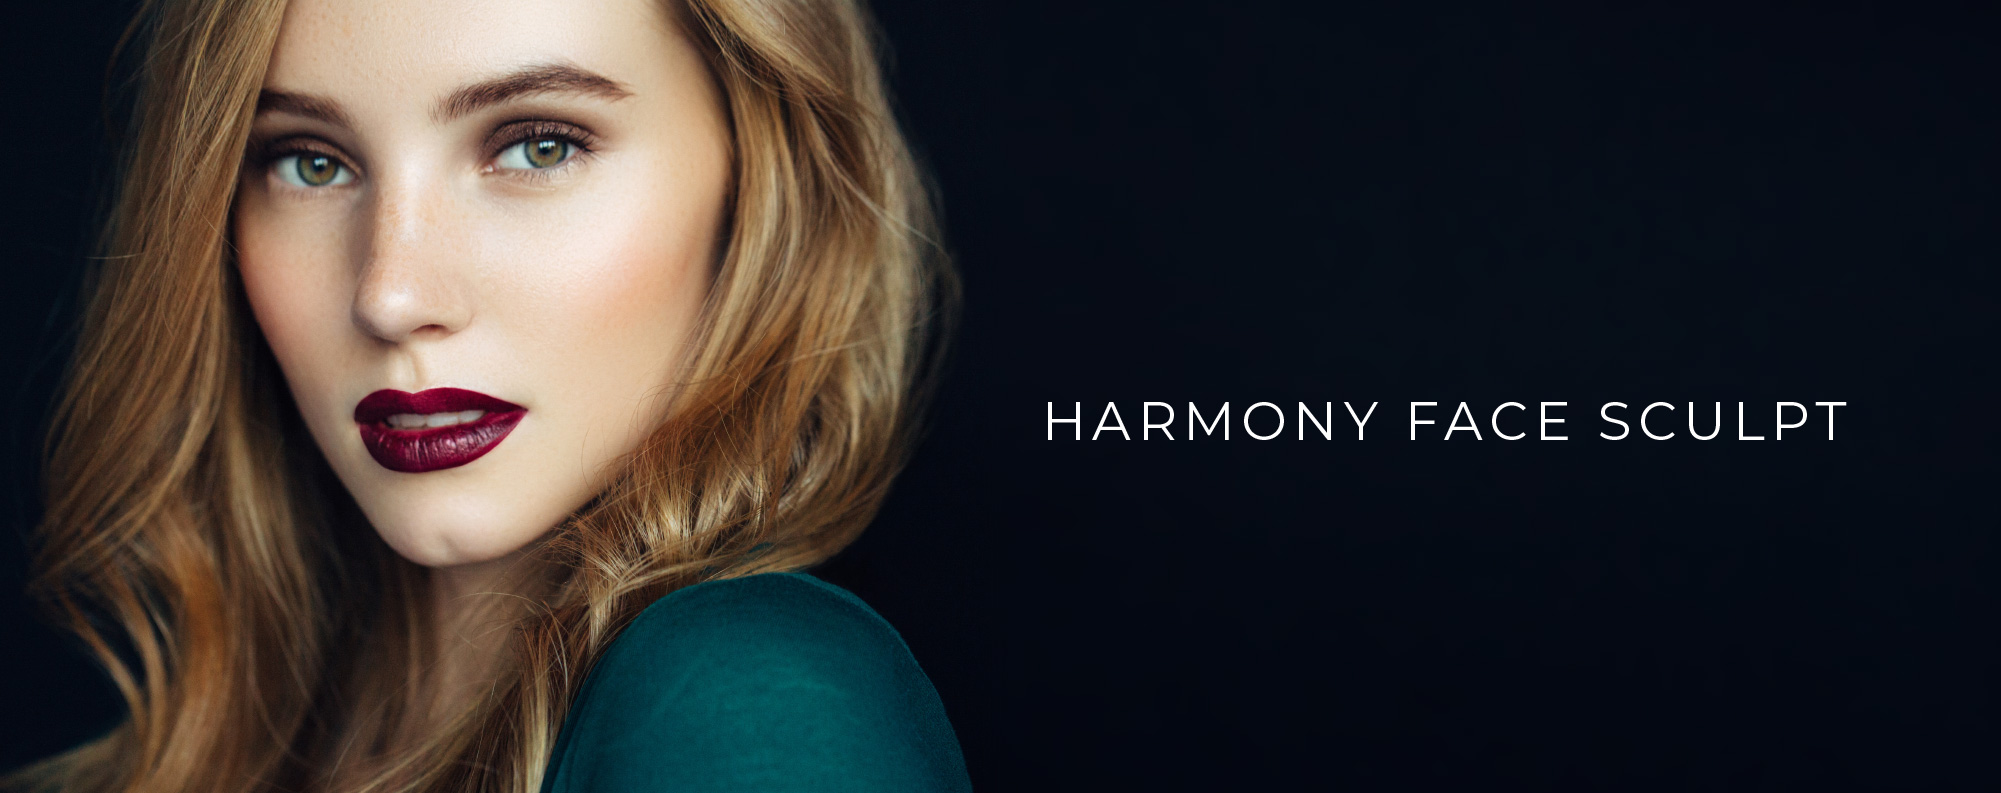 Harmony Face Sculpt